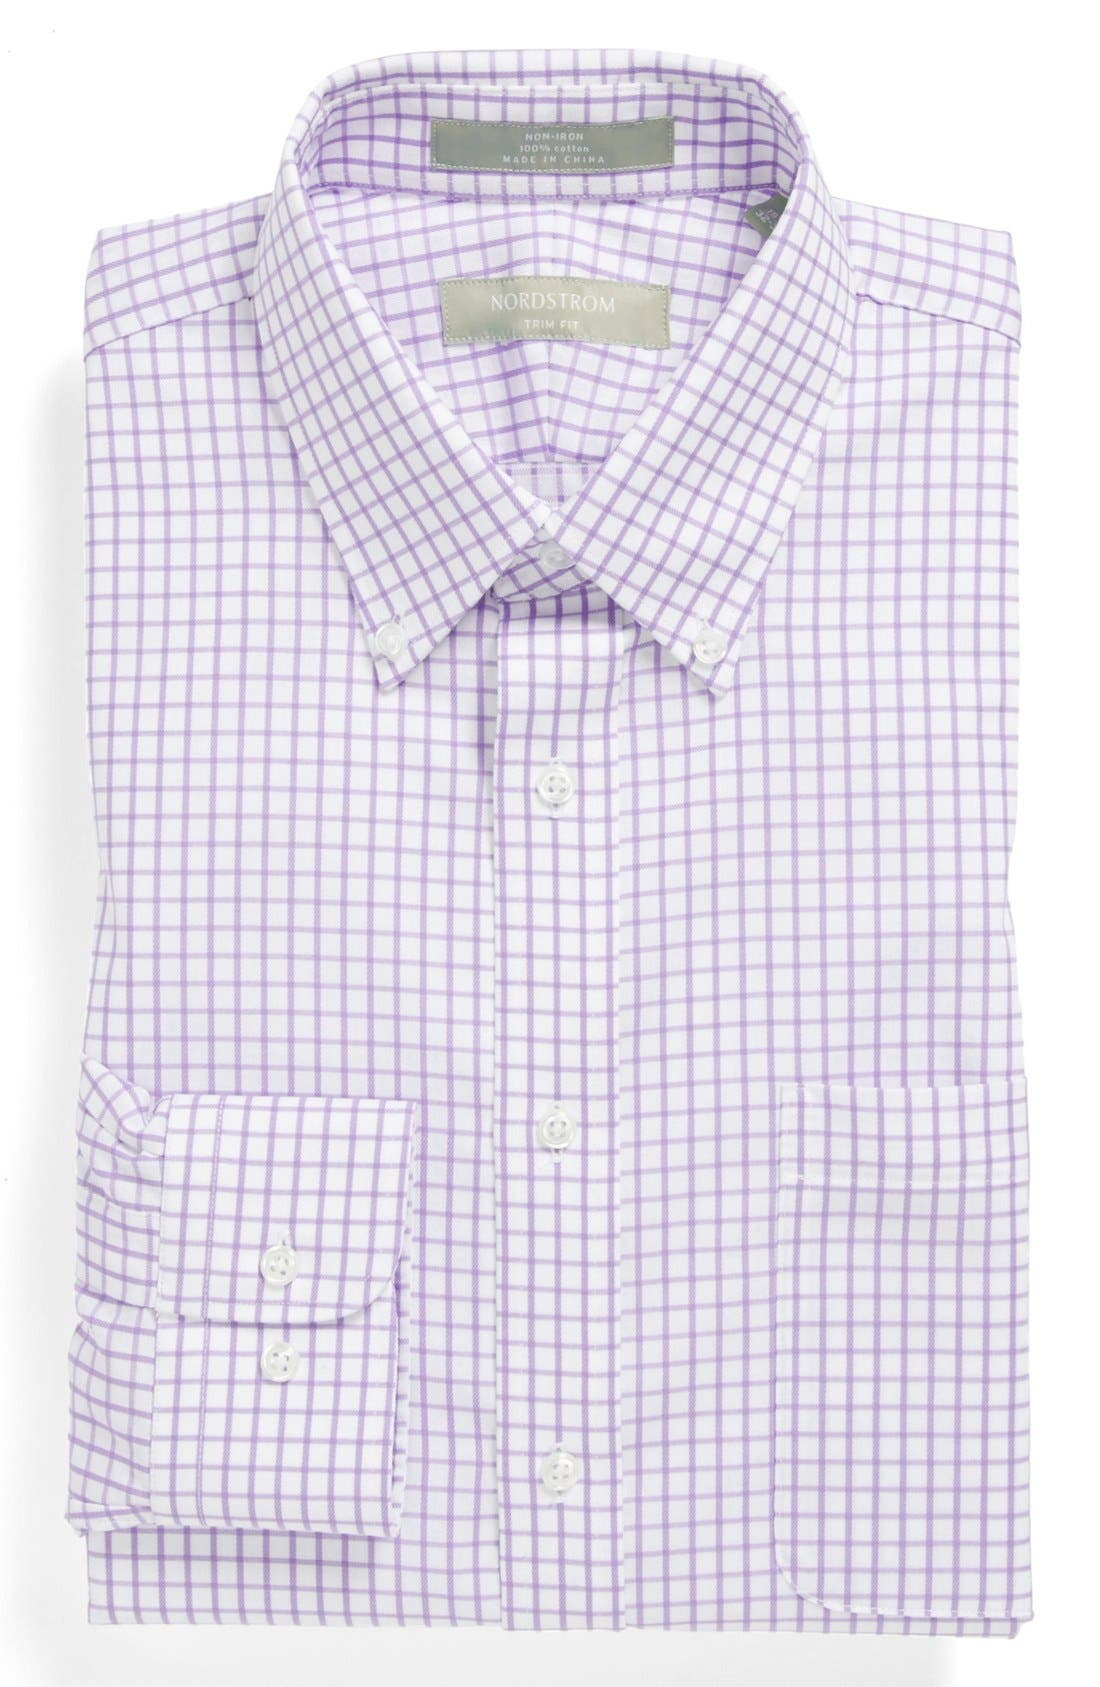 Main Image - Nordstrom Trim Fit Smartcare™ Check Dress Shirt